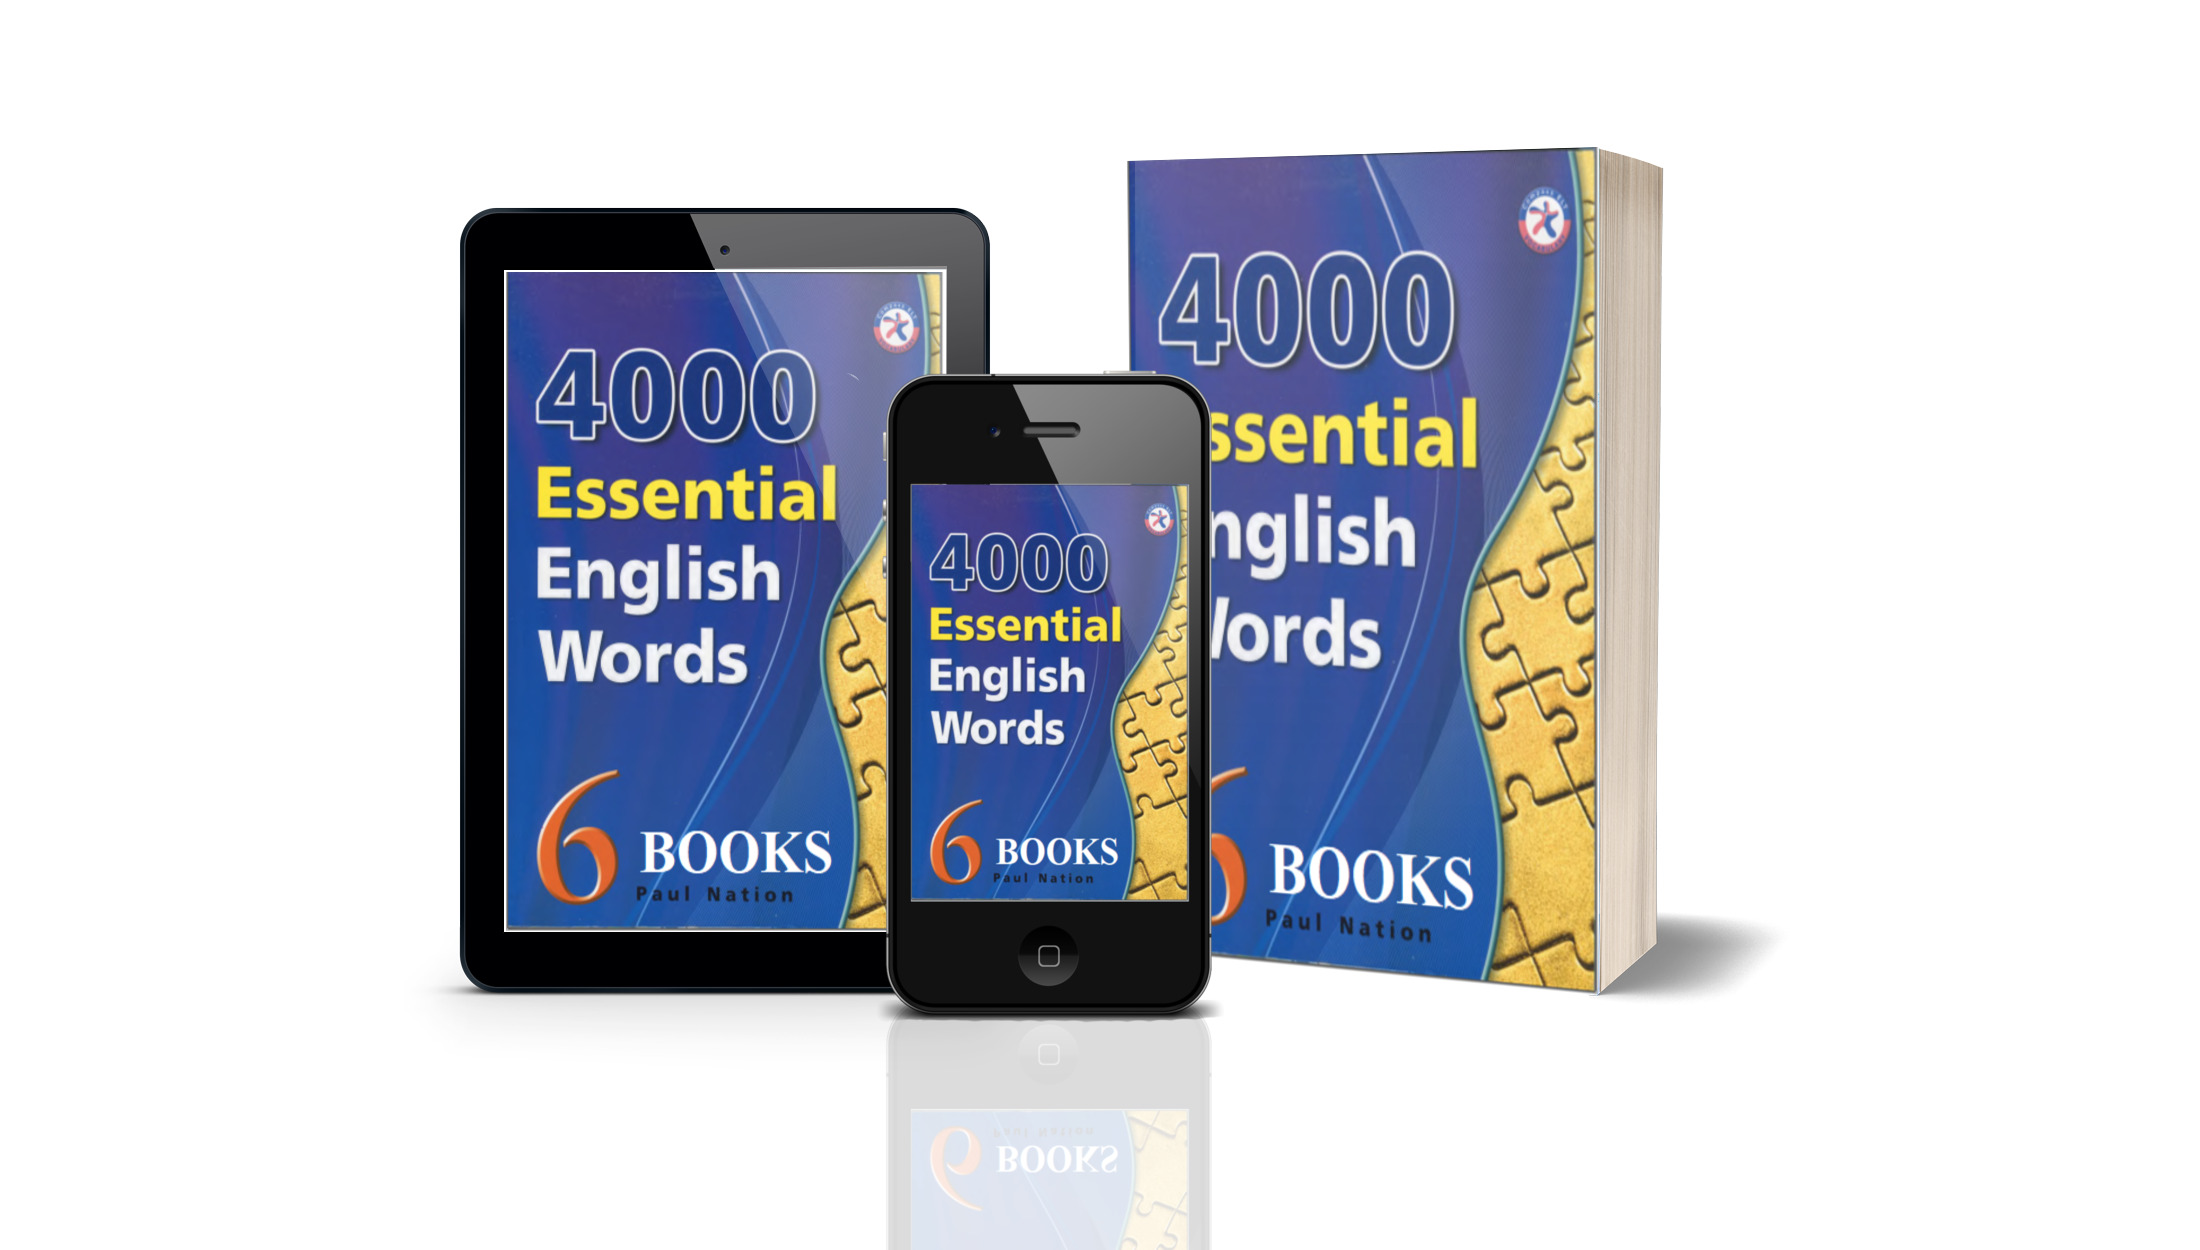 BOOK: 4000 ESSENTIAL ENGLISH WORDS